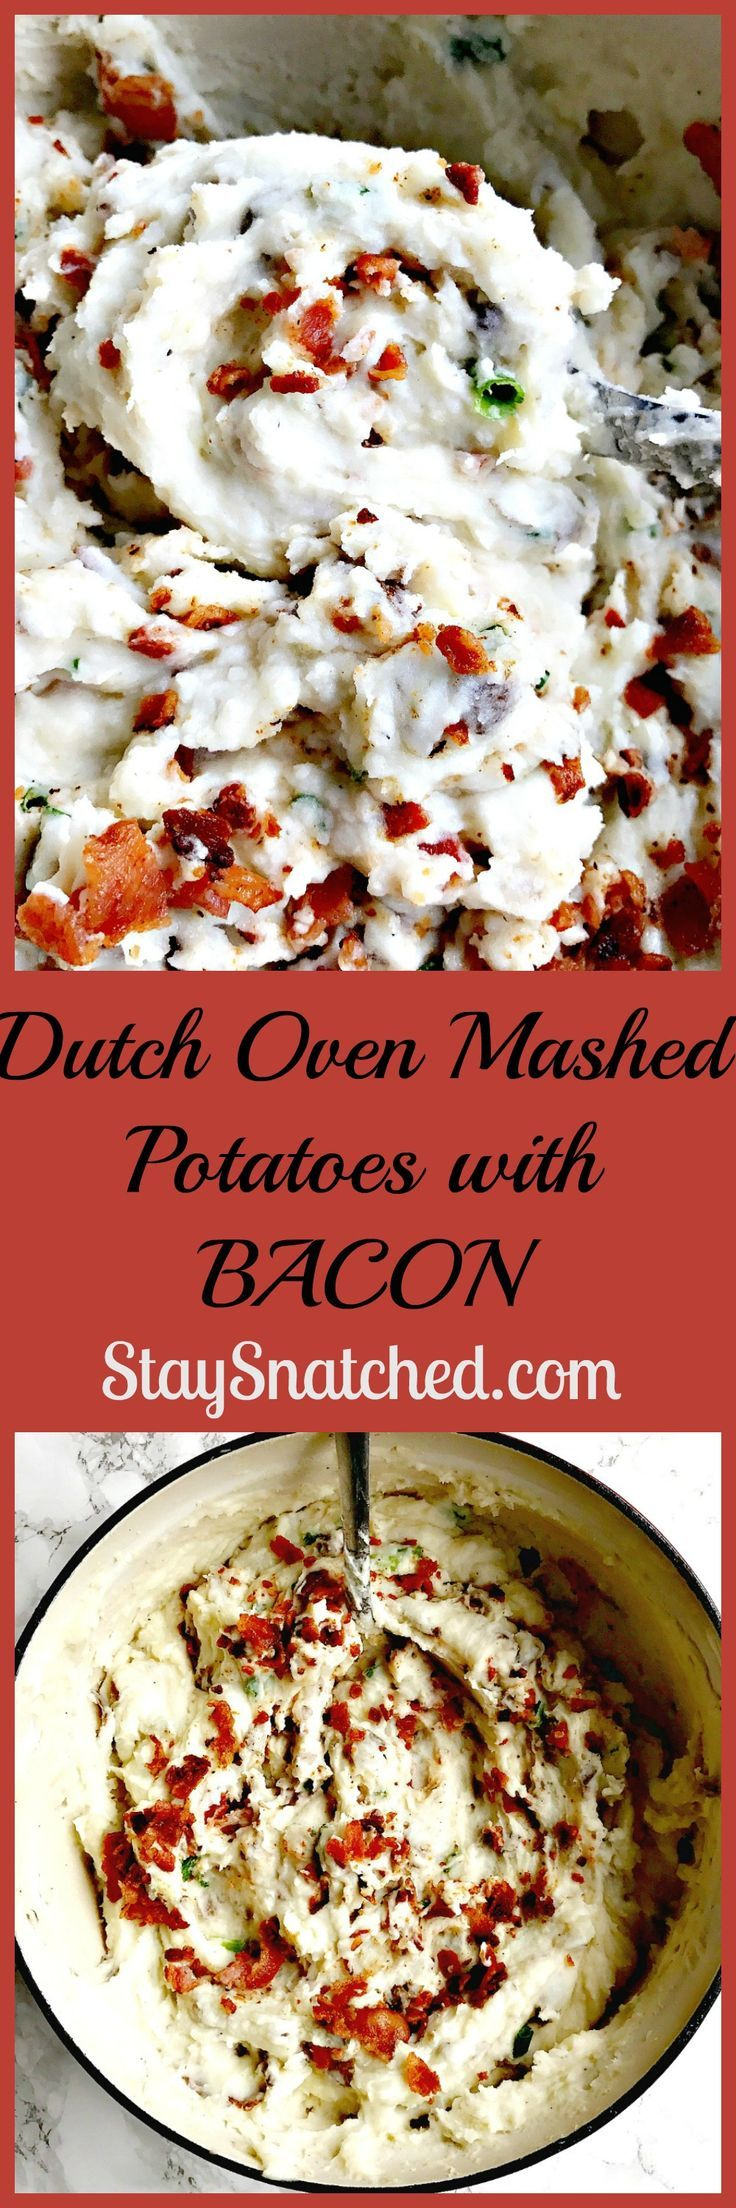 Dutch oven mashed potatoes with bacon: creamy mashed potatoes with cream cheese and bacon